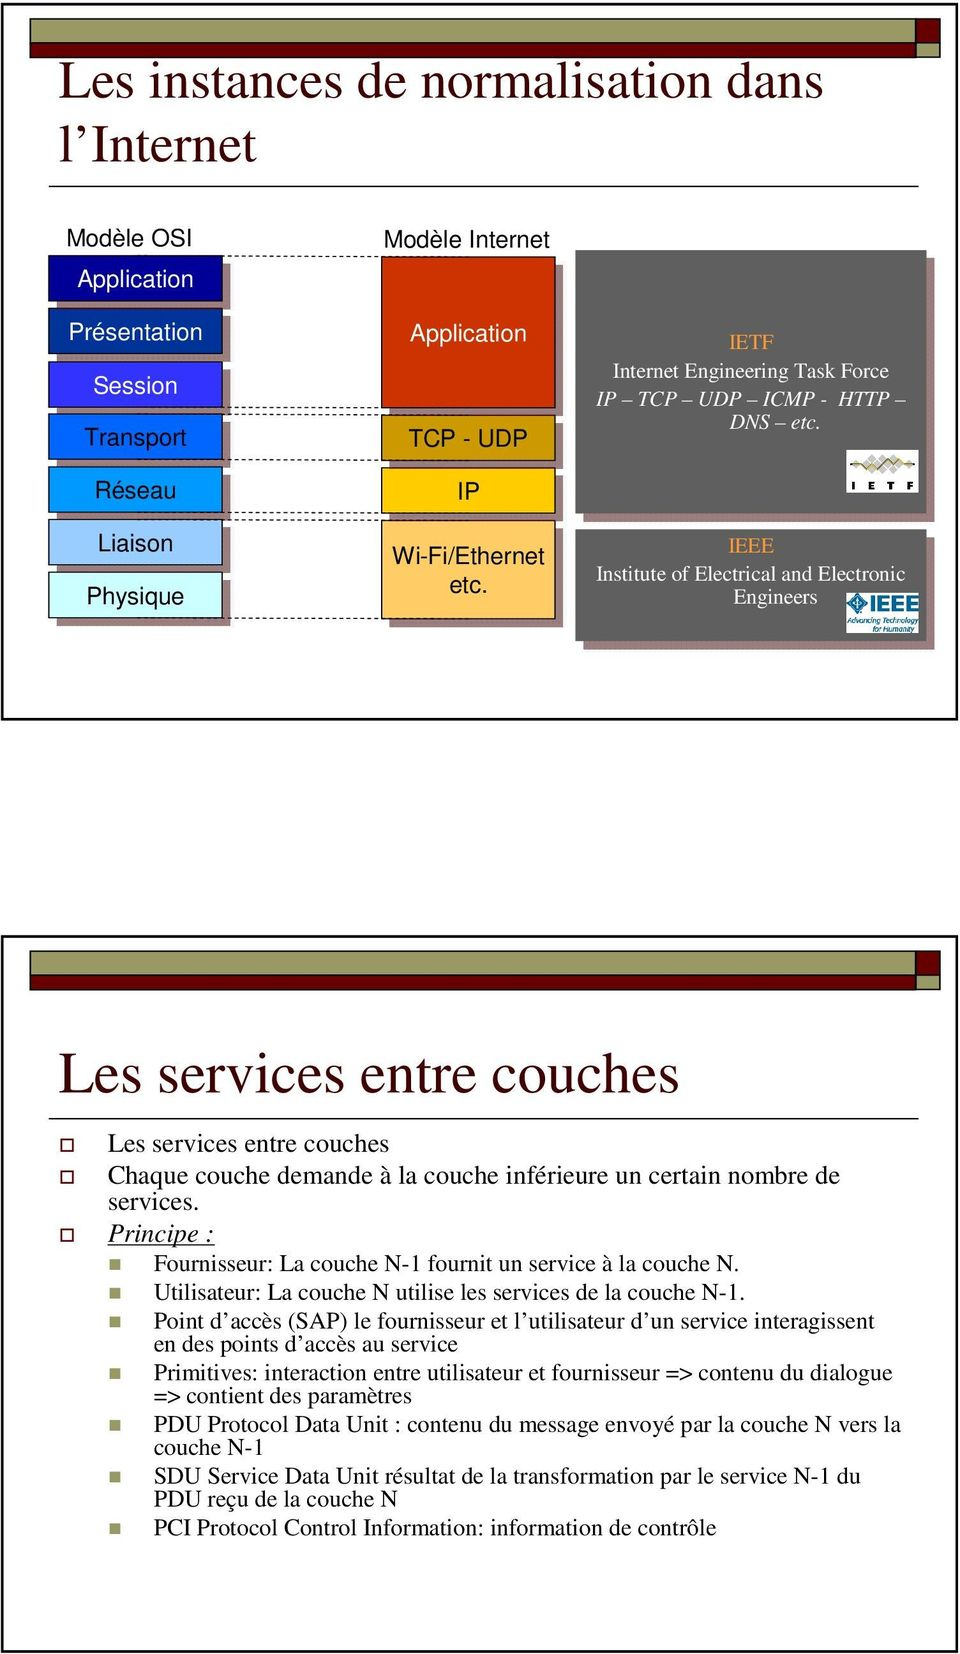 etc. IEEE IEEE Institute Institute of of Electrical Electricaland and Electronic Electronic Engineers Engineers Les services entre couches Les services entre couches Chaque couche demande à la couche